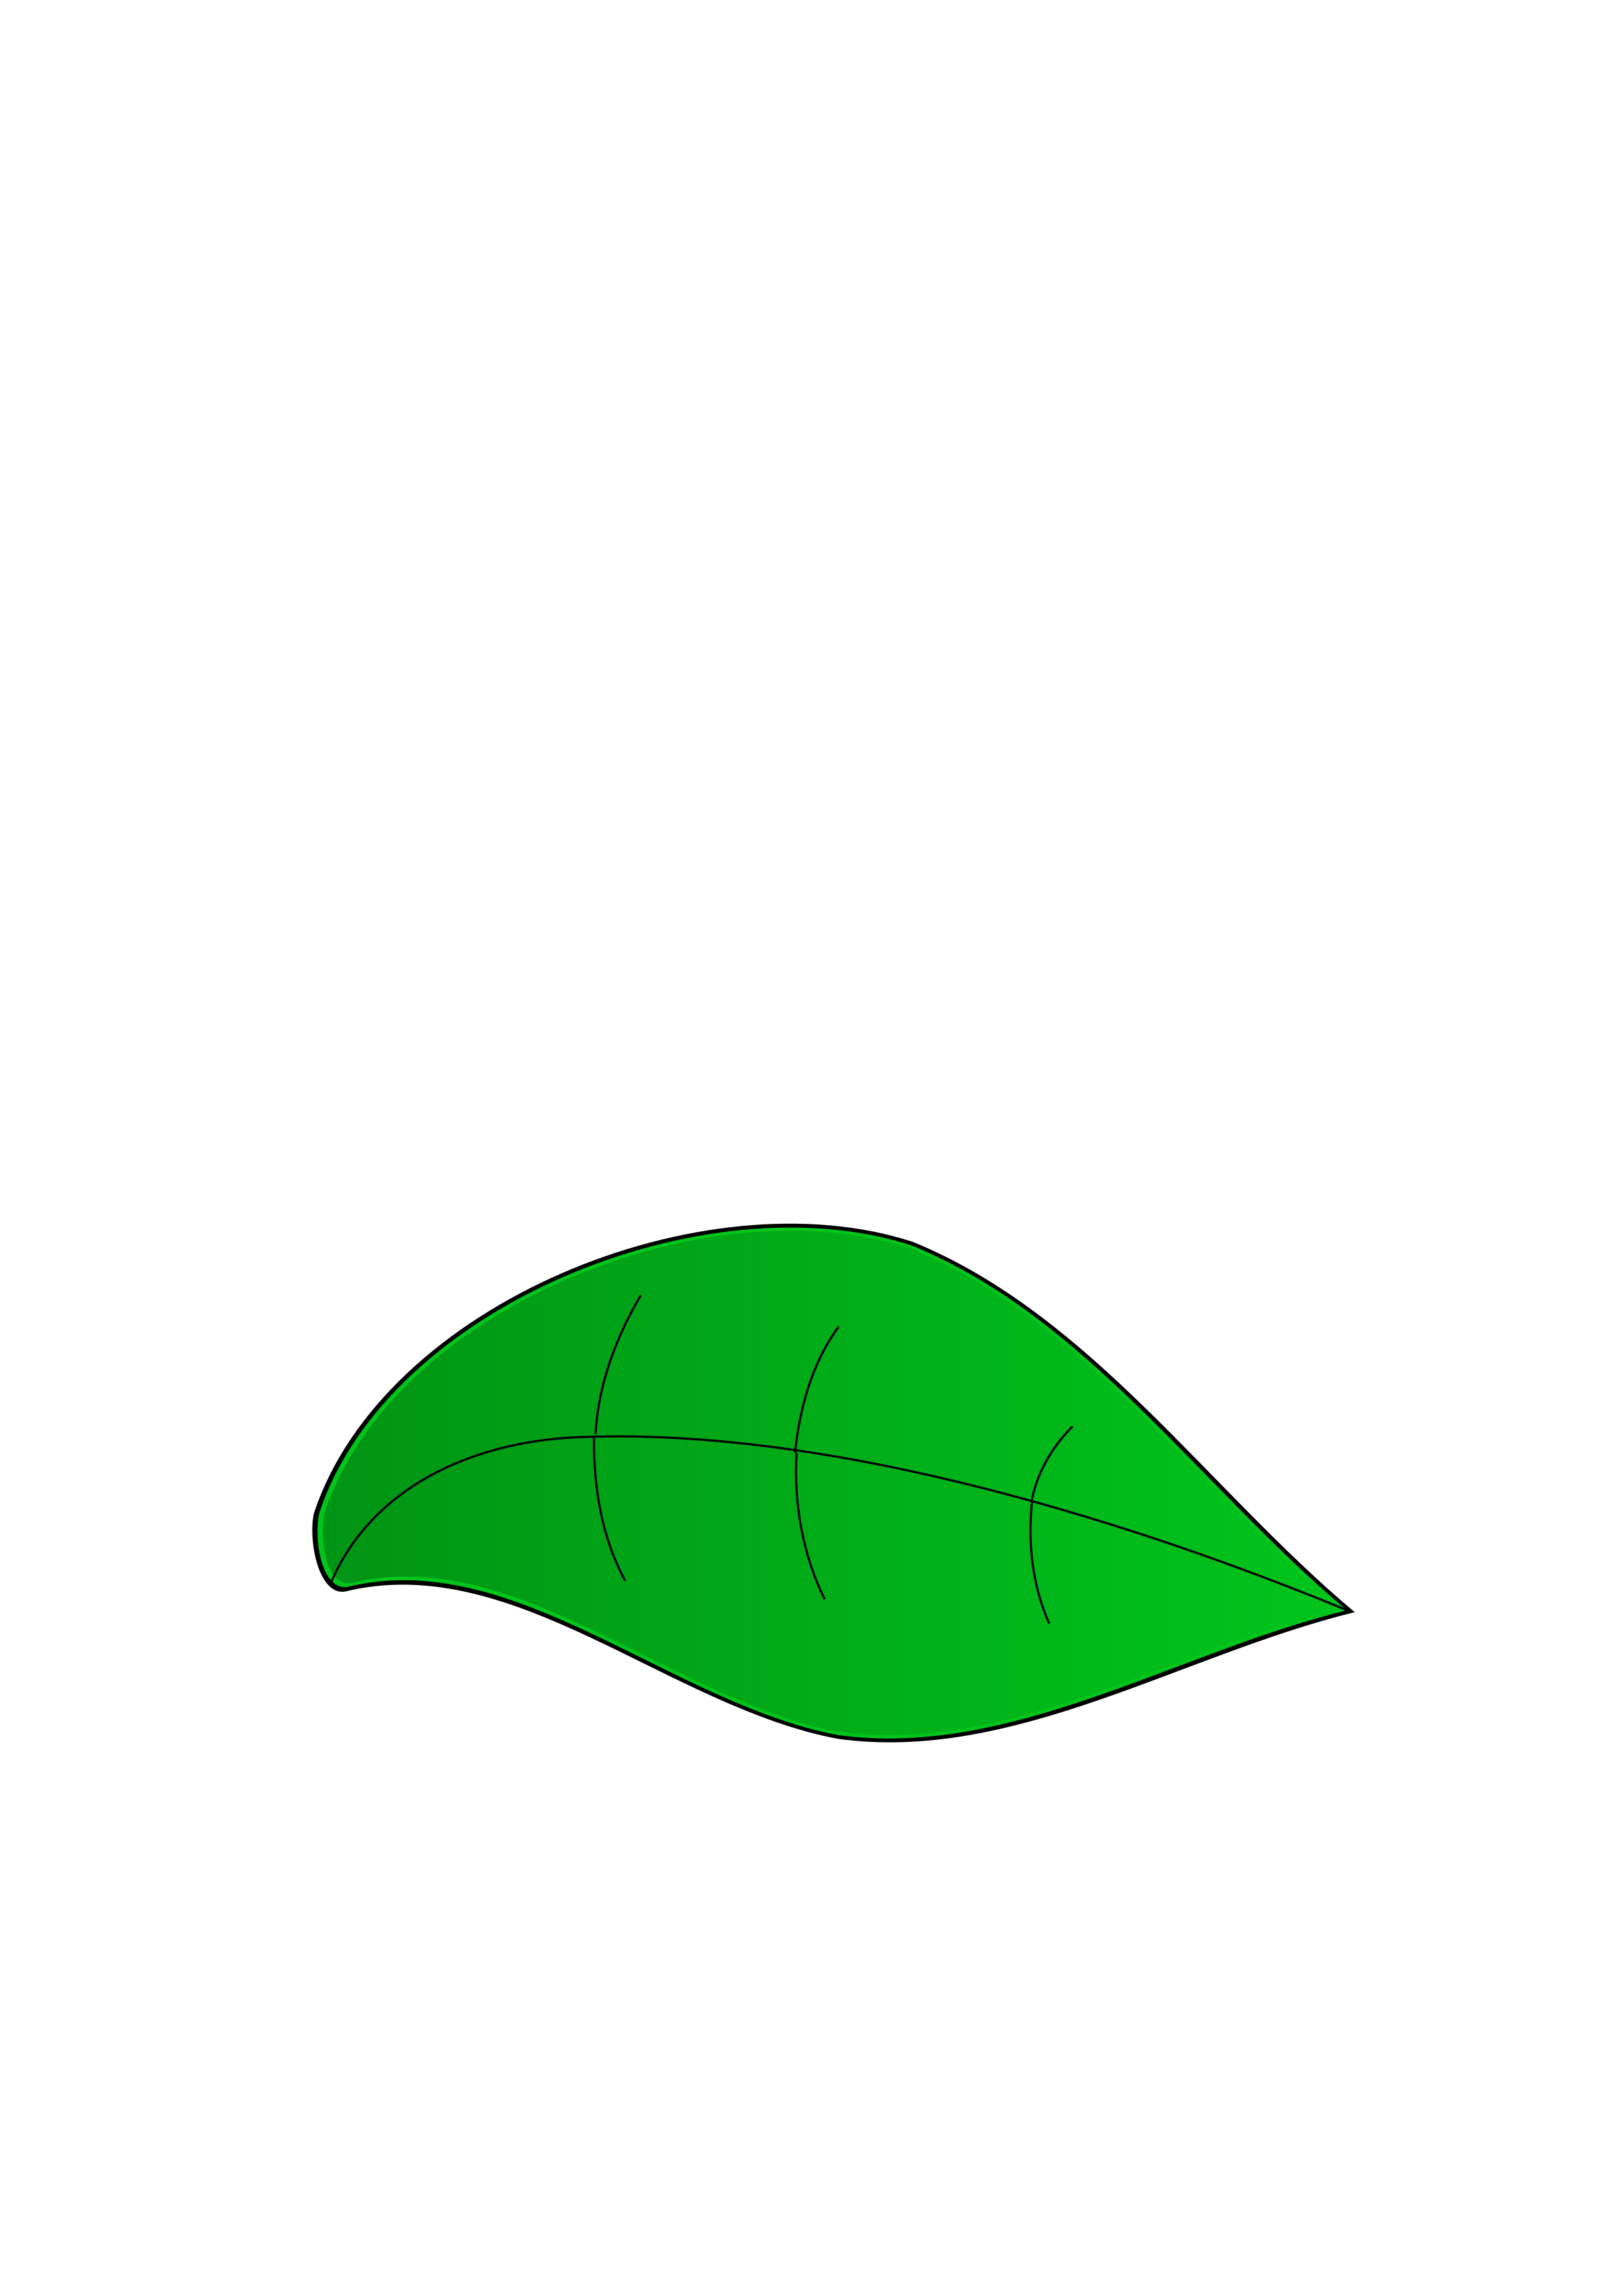 green leaf by joob